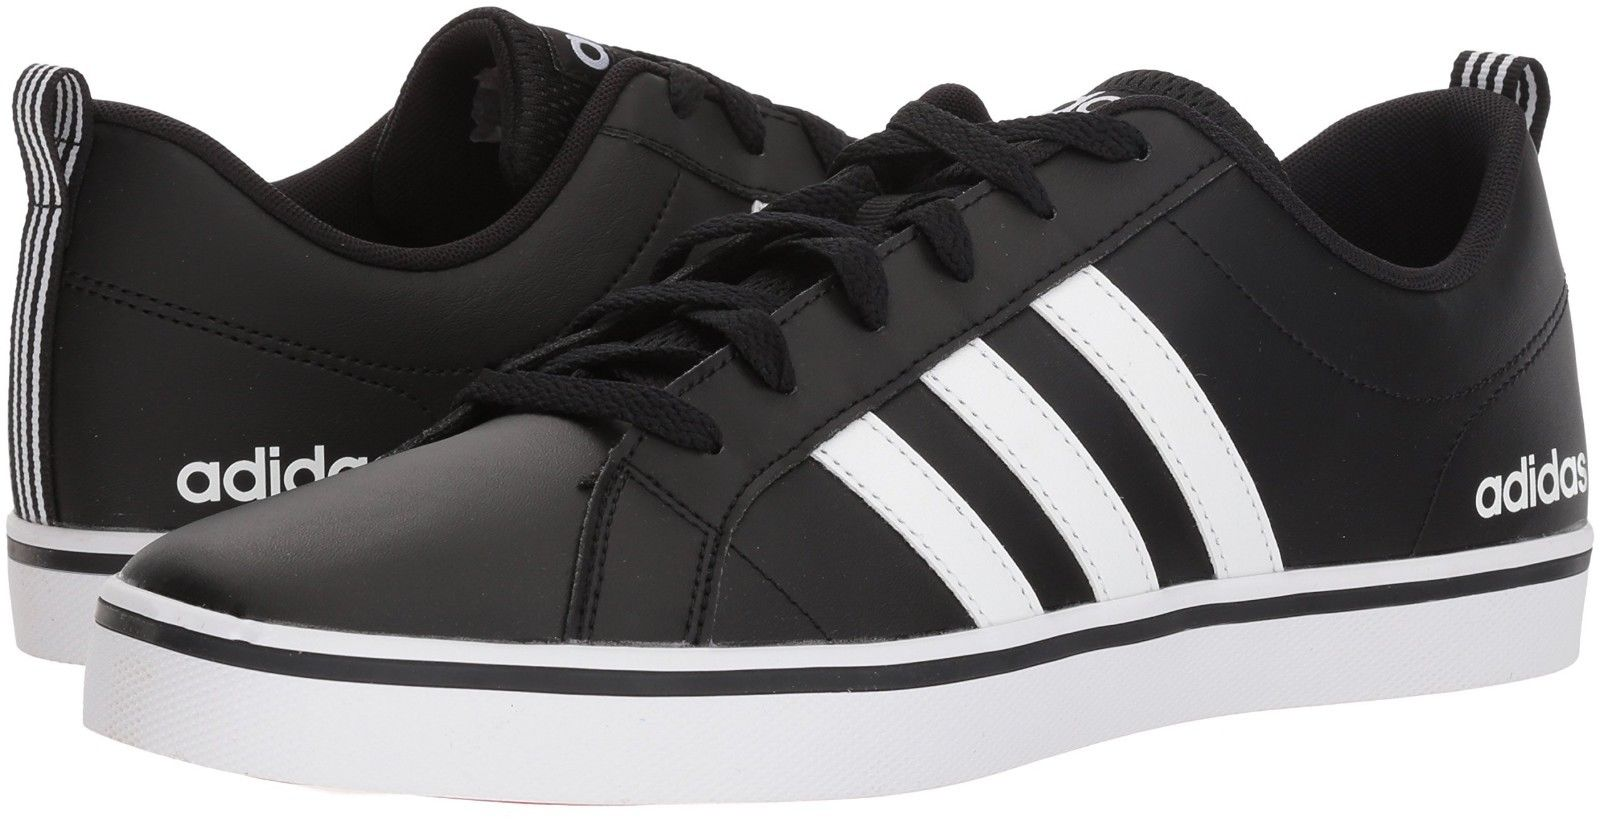 info for f3a6f c5bc2 adidas Men s VS Pace Sneaker, Core Black, FTWR White B74494 BASKETBALL US  Size 10